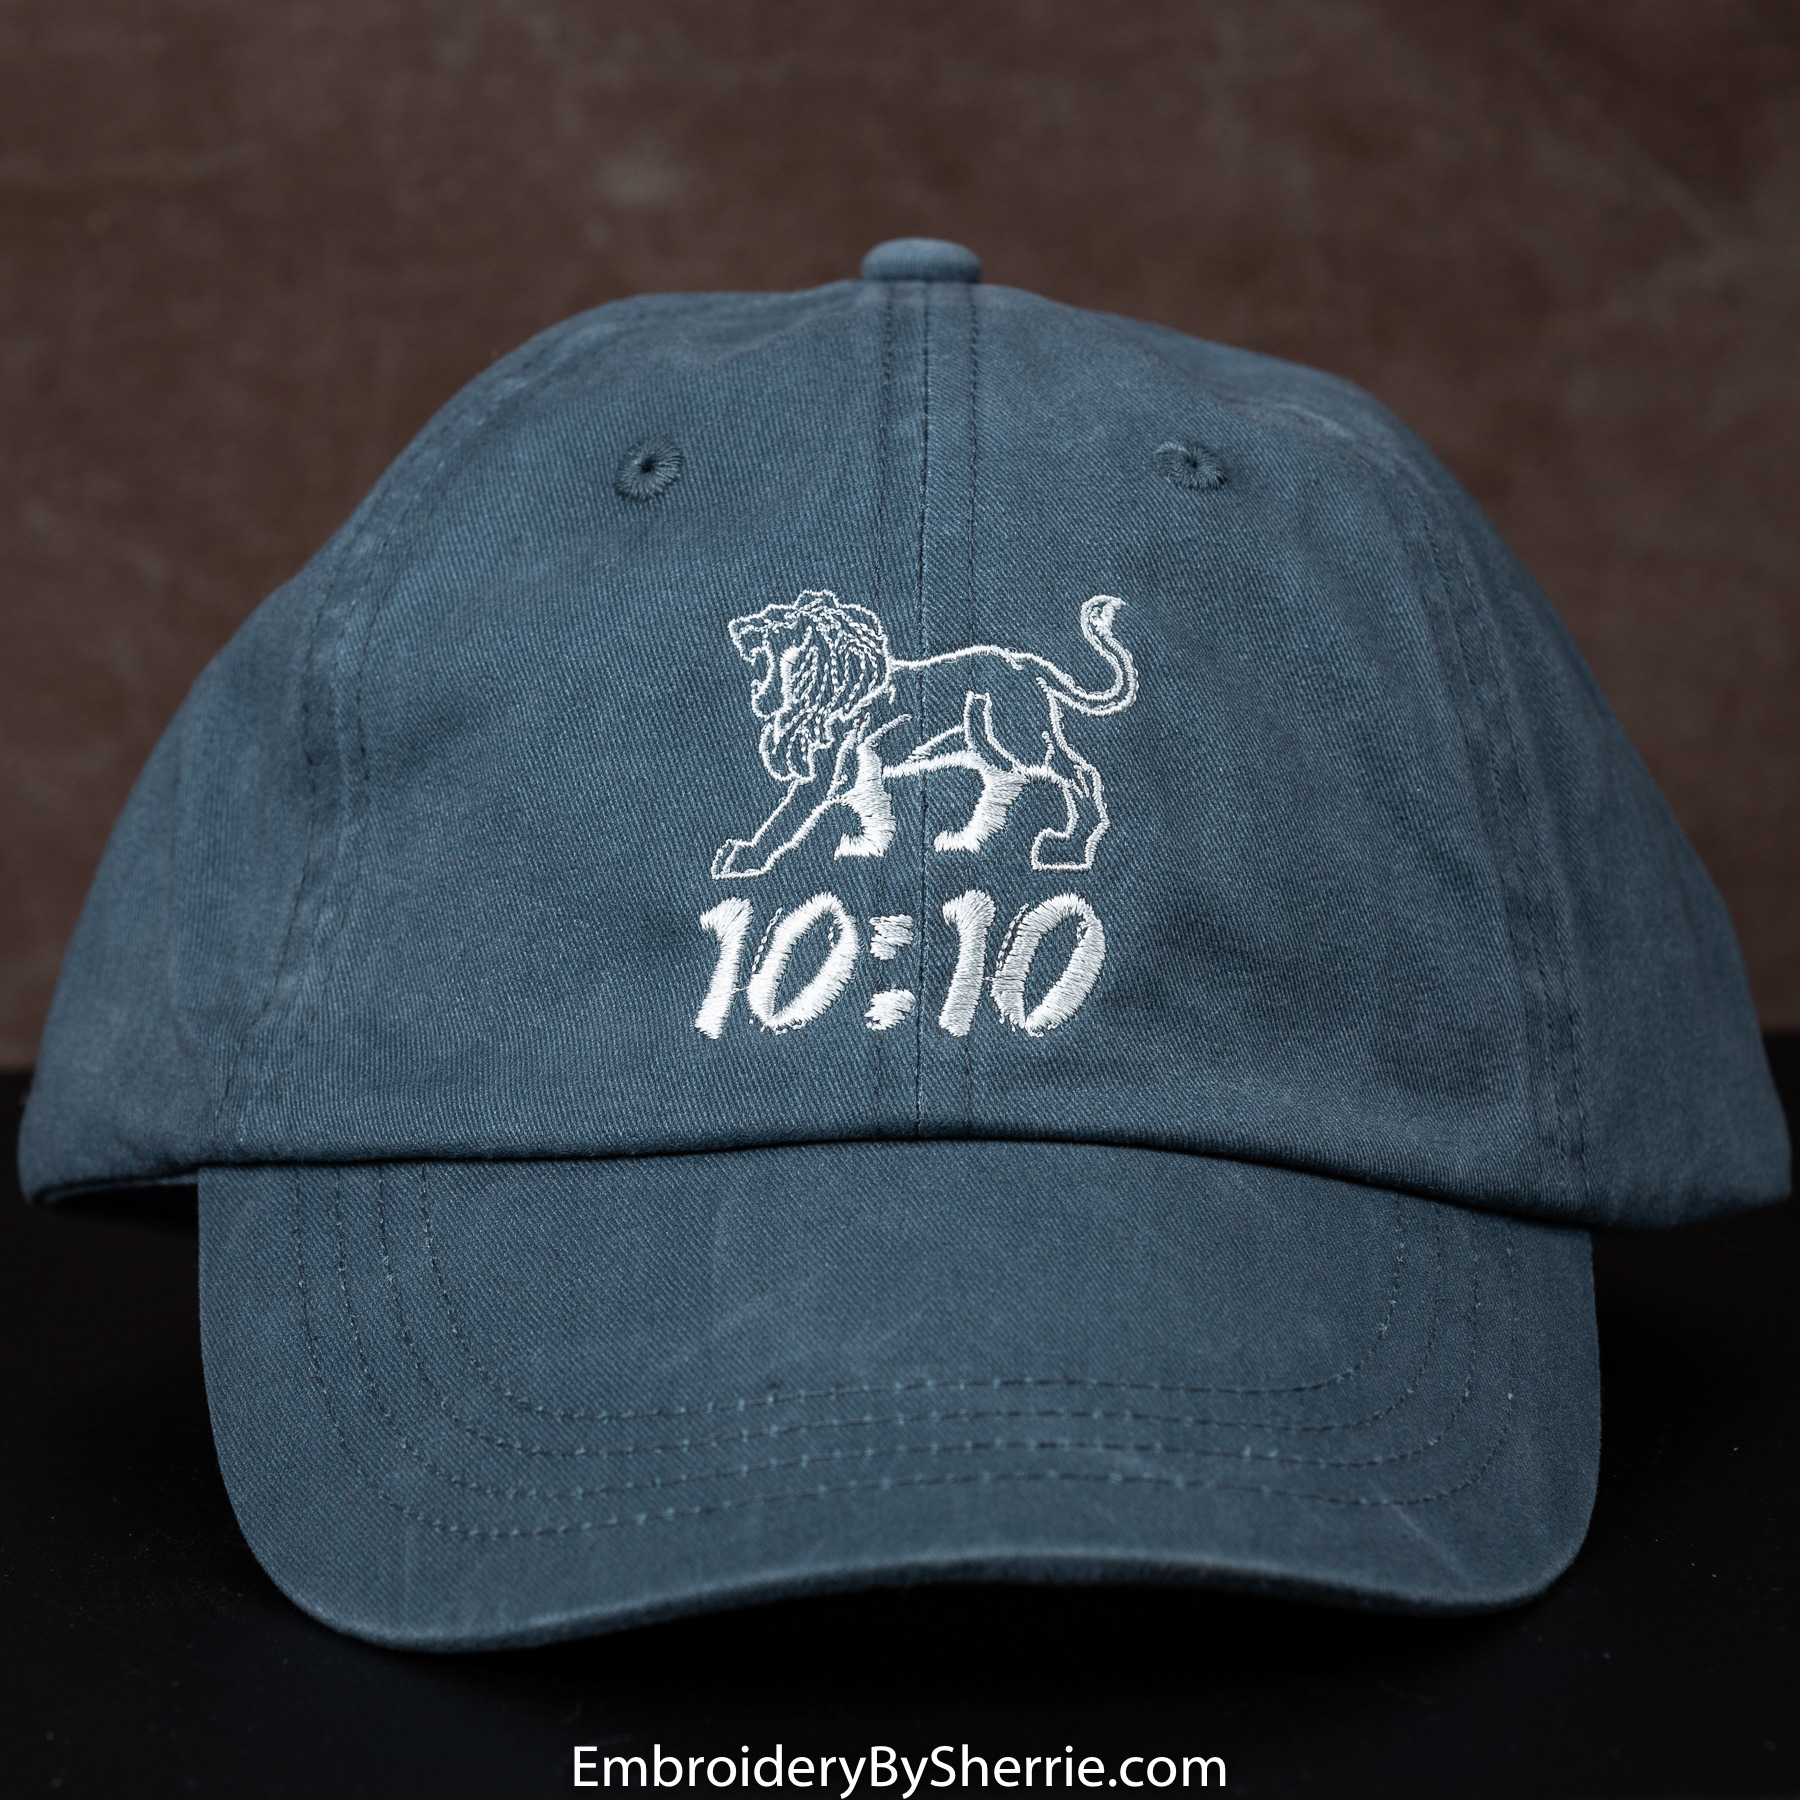 Embroidery   More by Sherrie - Caps Hats ef3c1470c3d4